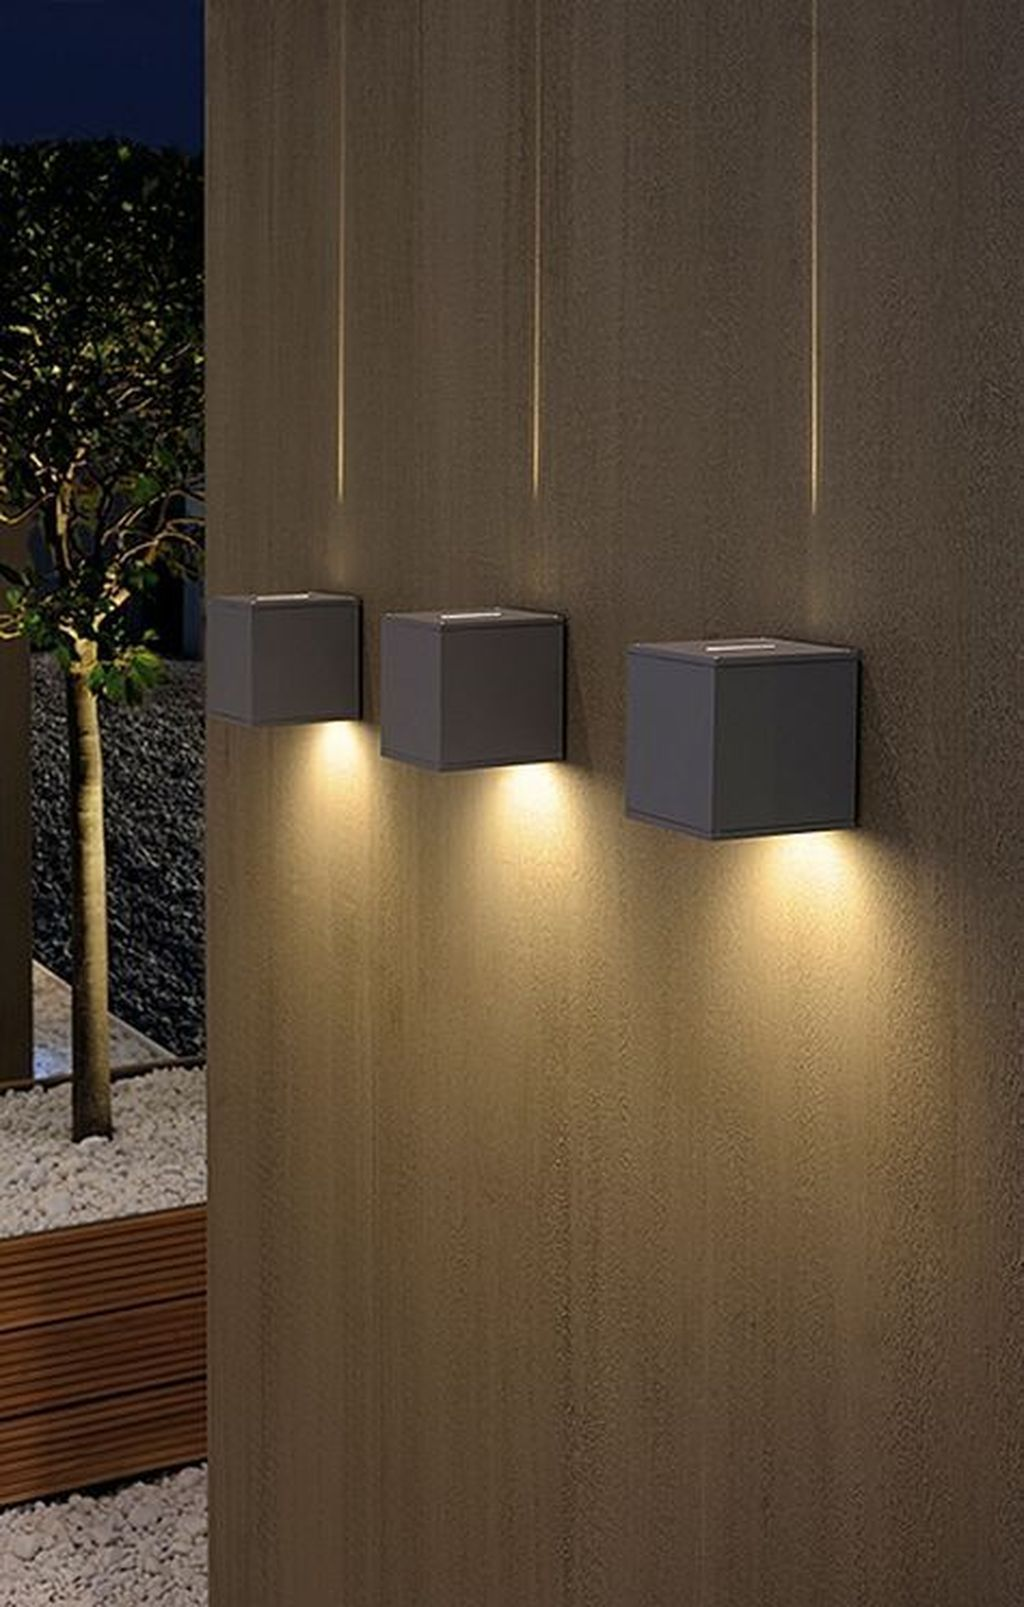 Cool 36 Captivating Lamps And Lights Ideas For Outdoors In Summer